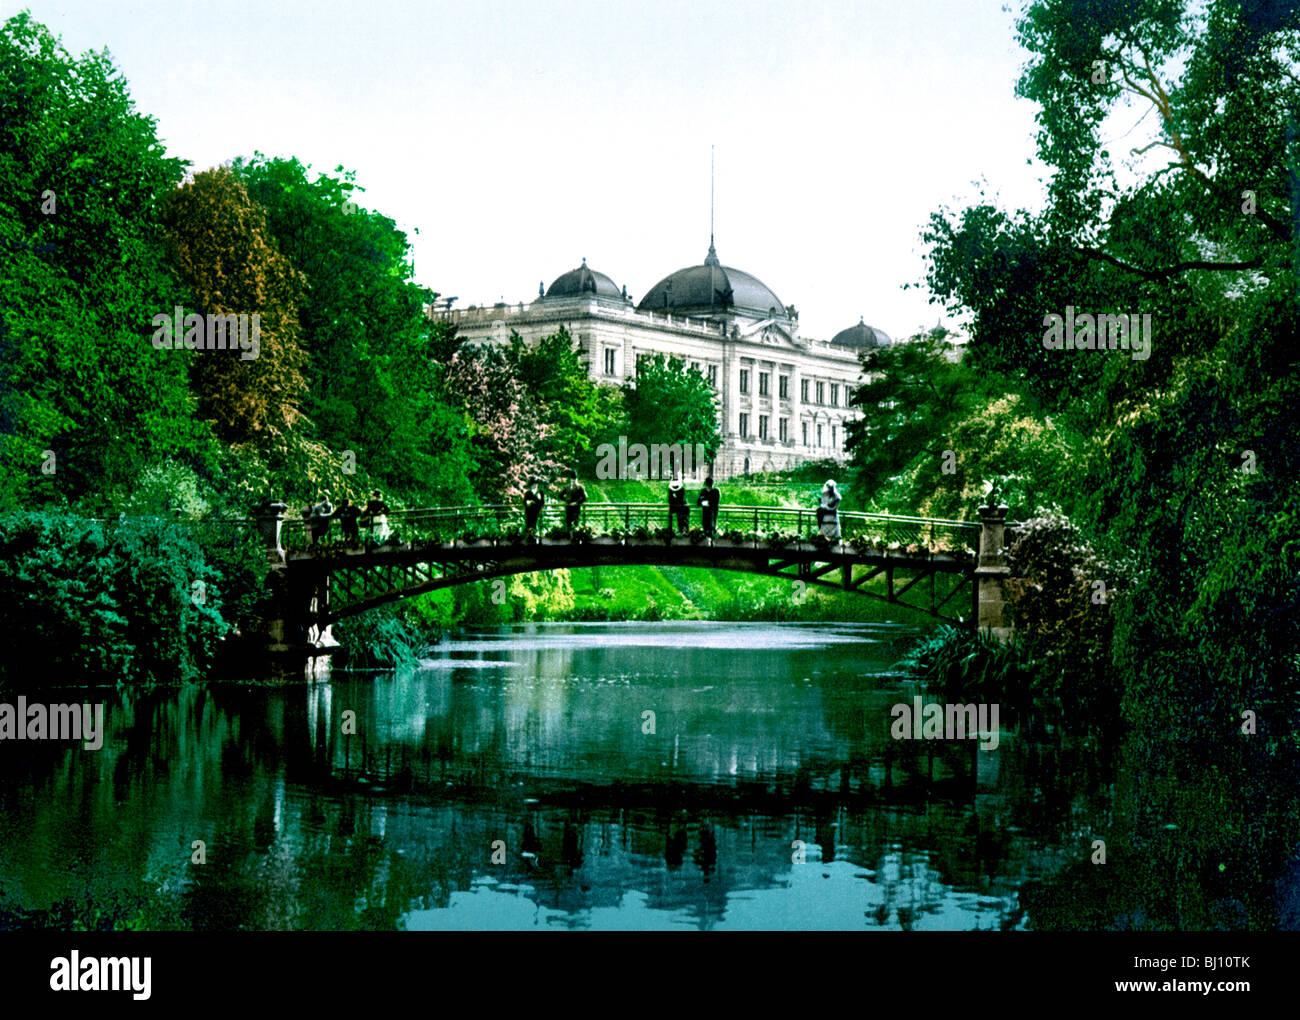 Botanischer Garten Hamburg Stock Photo 28296819 Alamy